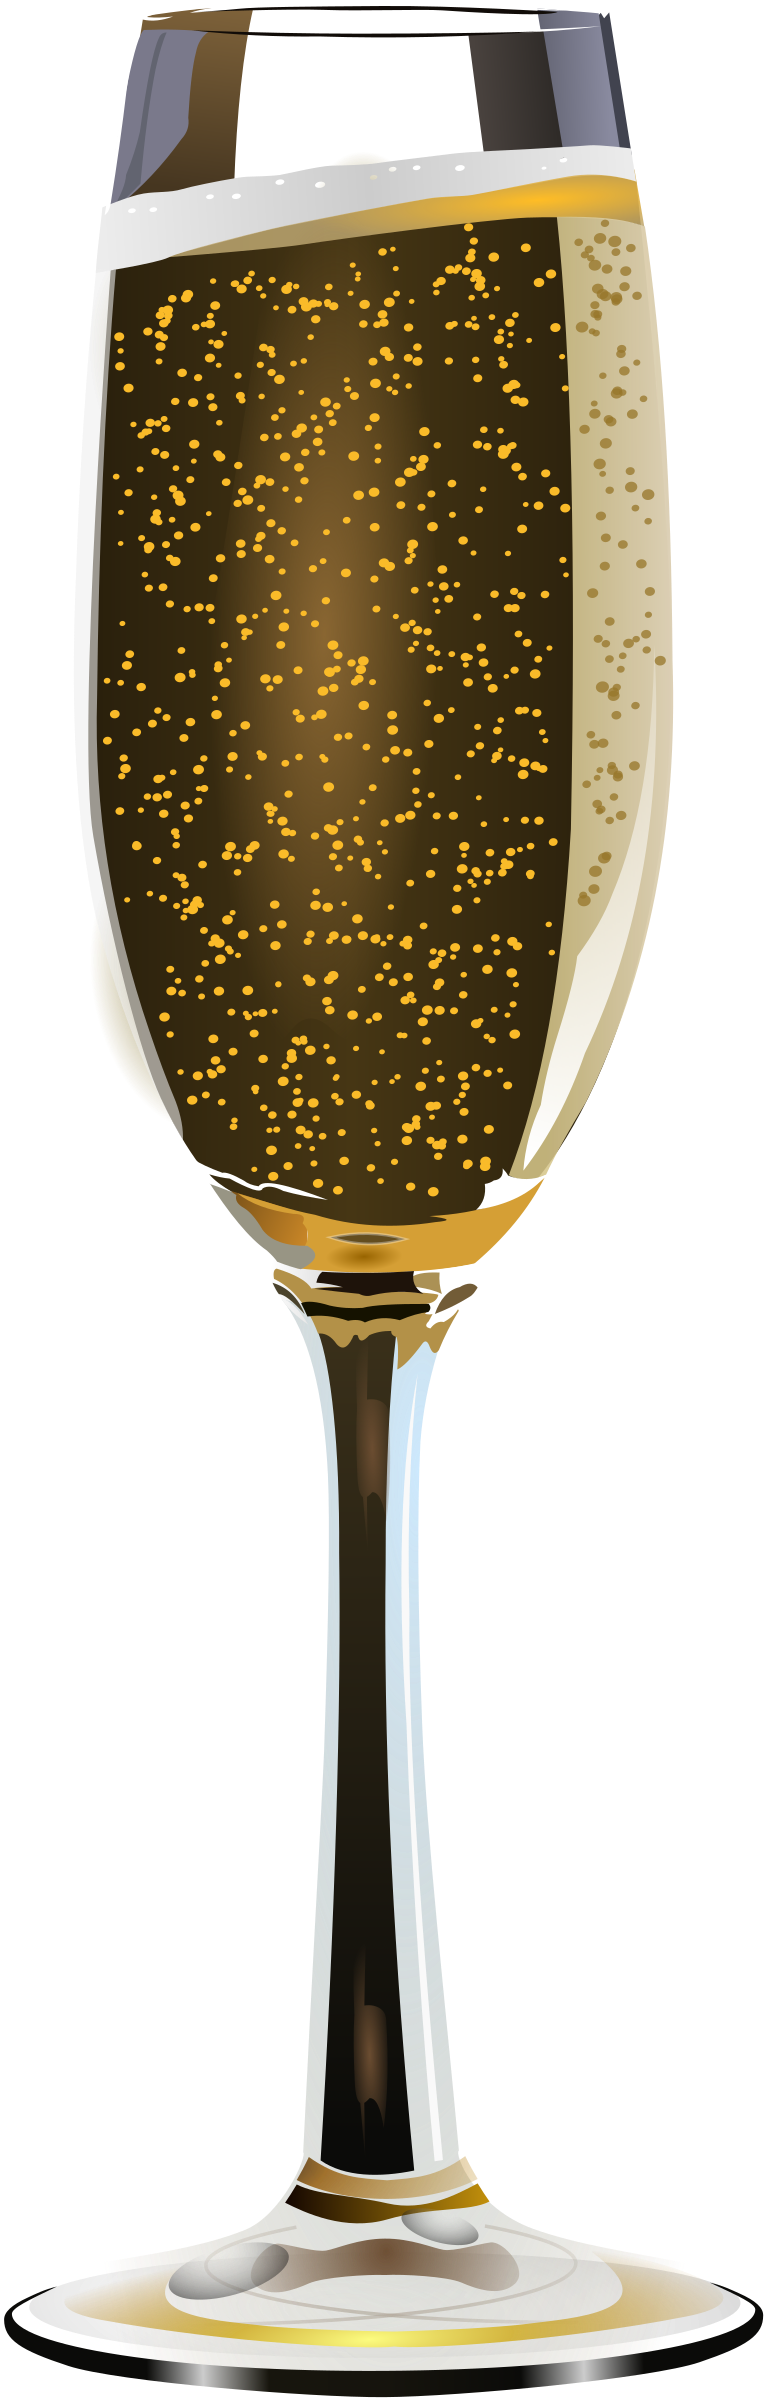 Champagne glass clipart hostted